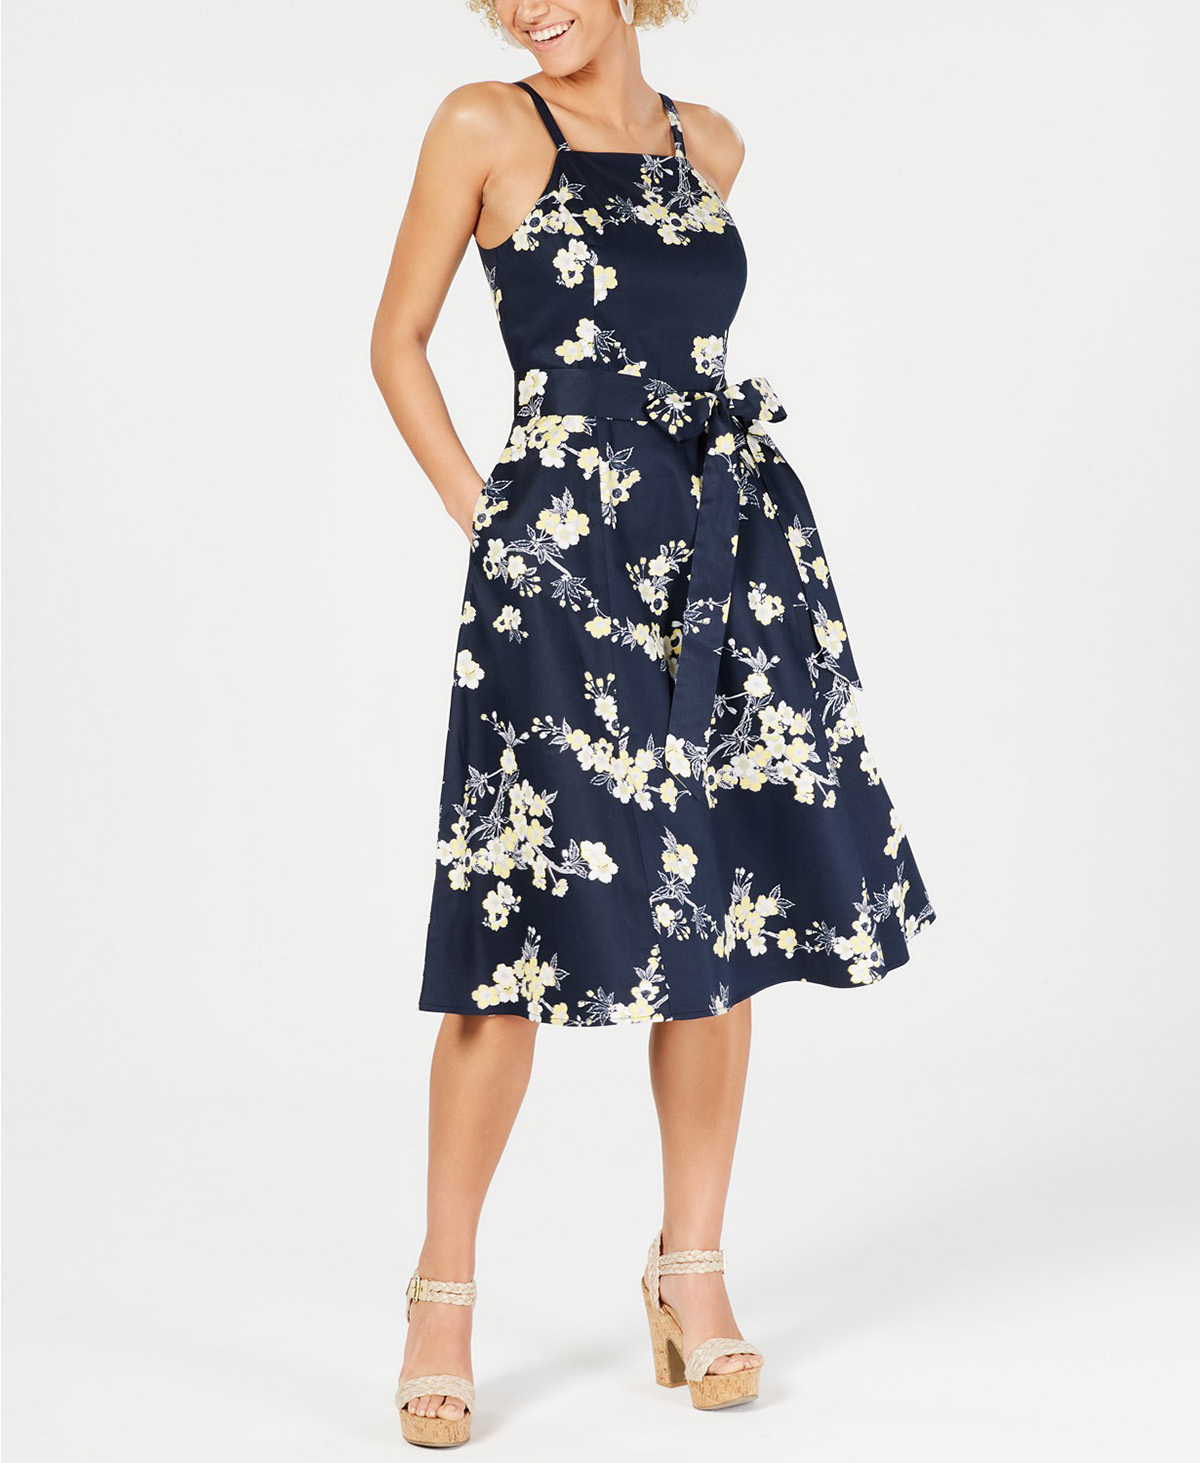 Rachel Roy Discount Gowns: Be The Best Dressed Wedding Guest With These 5 Under-$100